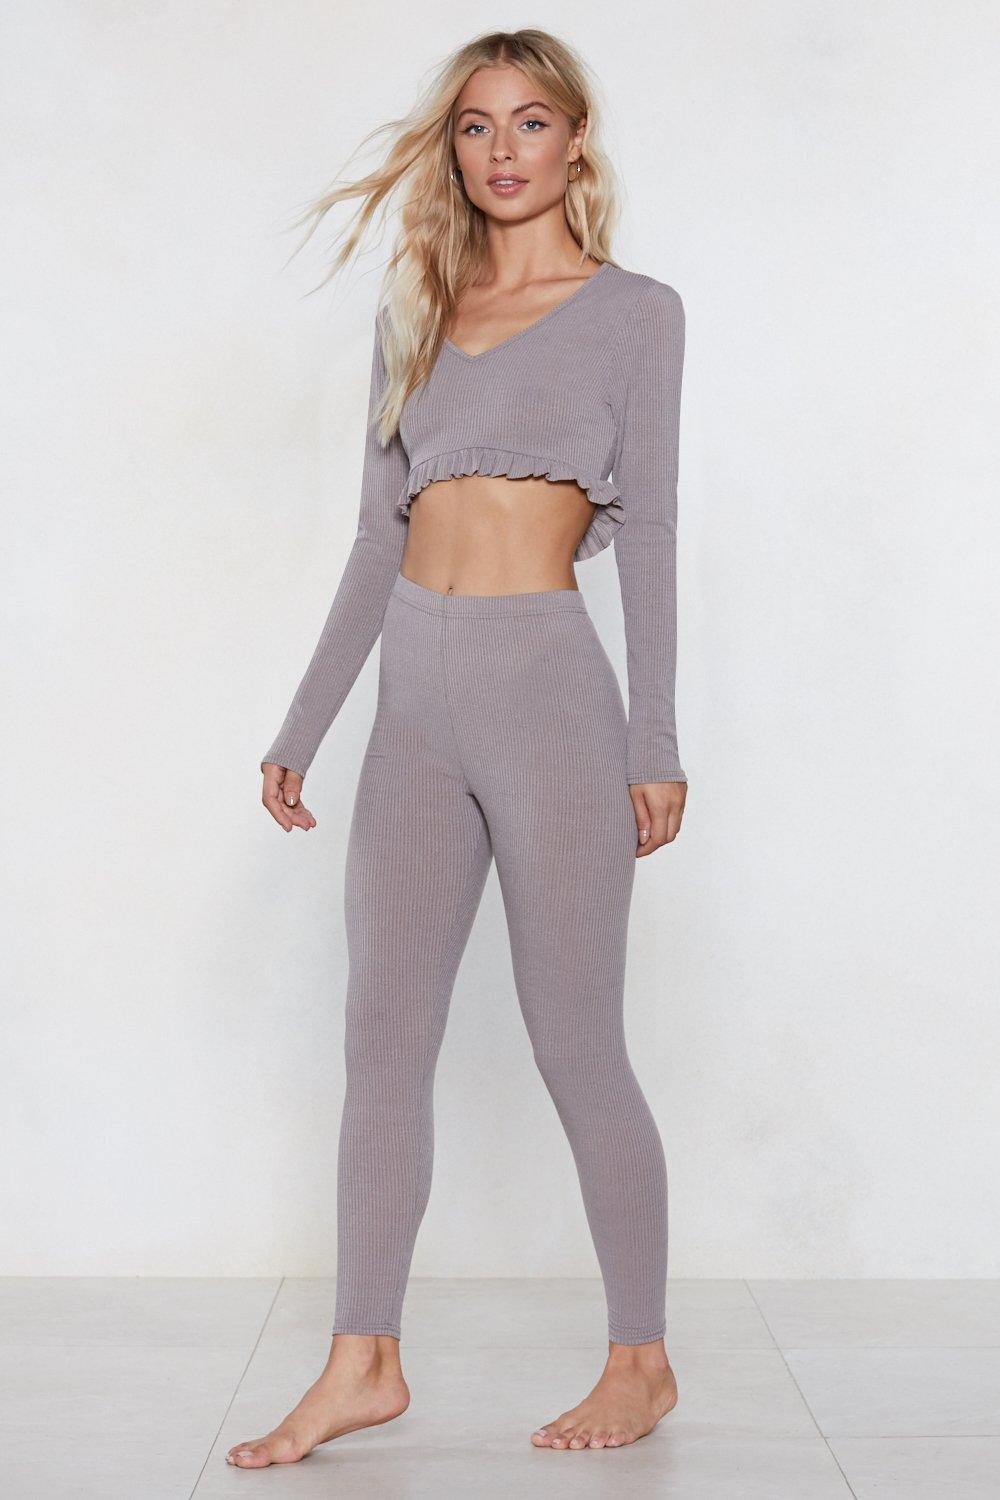 What S The Chill Lounge Crop Top And Leggings Set Nasty Gal